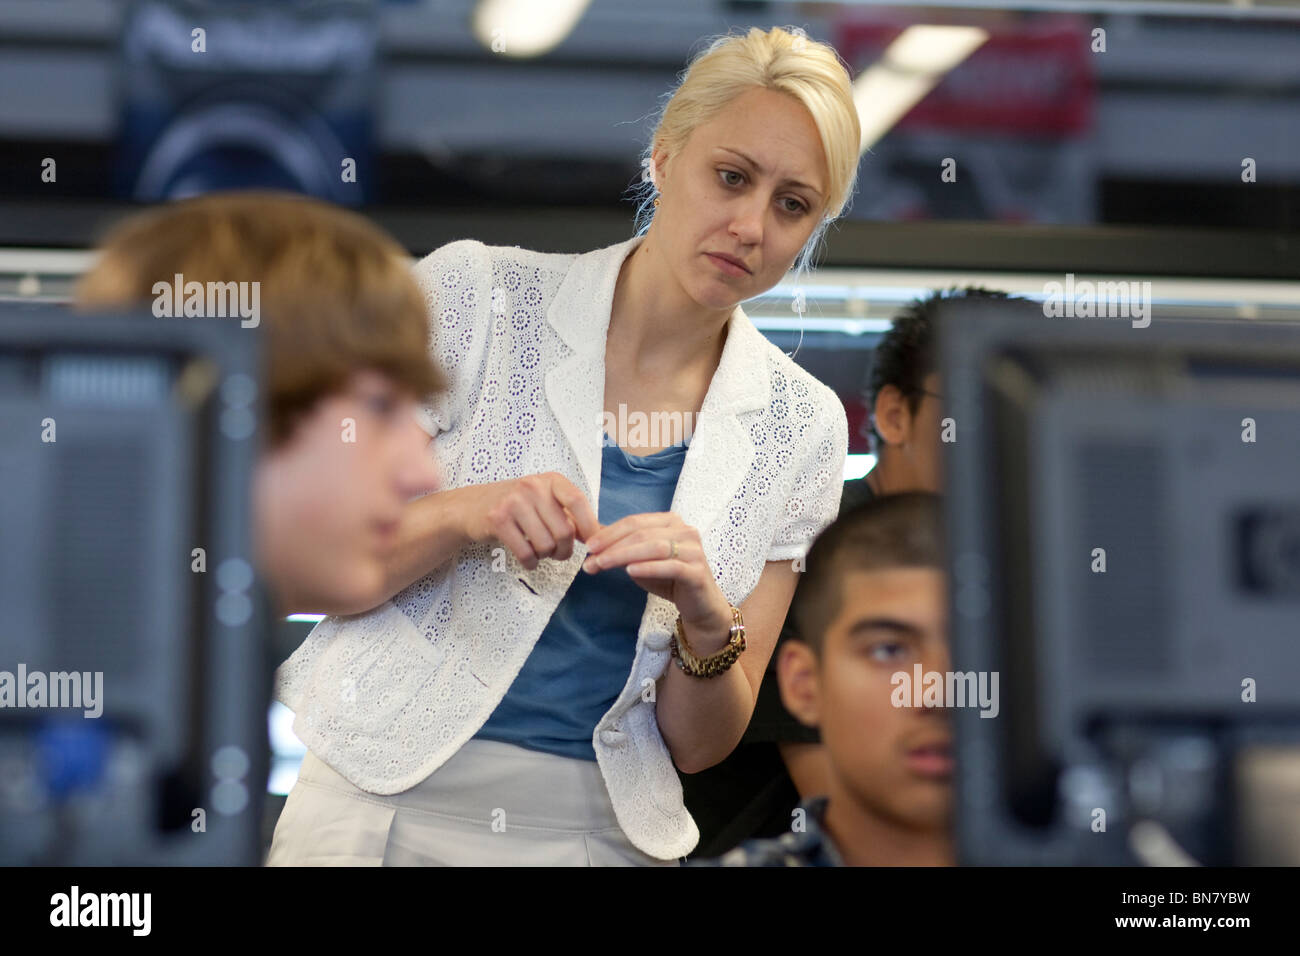 Anglo female high school English teacher reviews male student's work on his computer monitor. Stock Photo